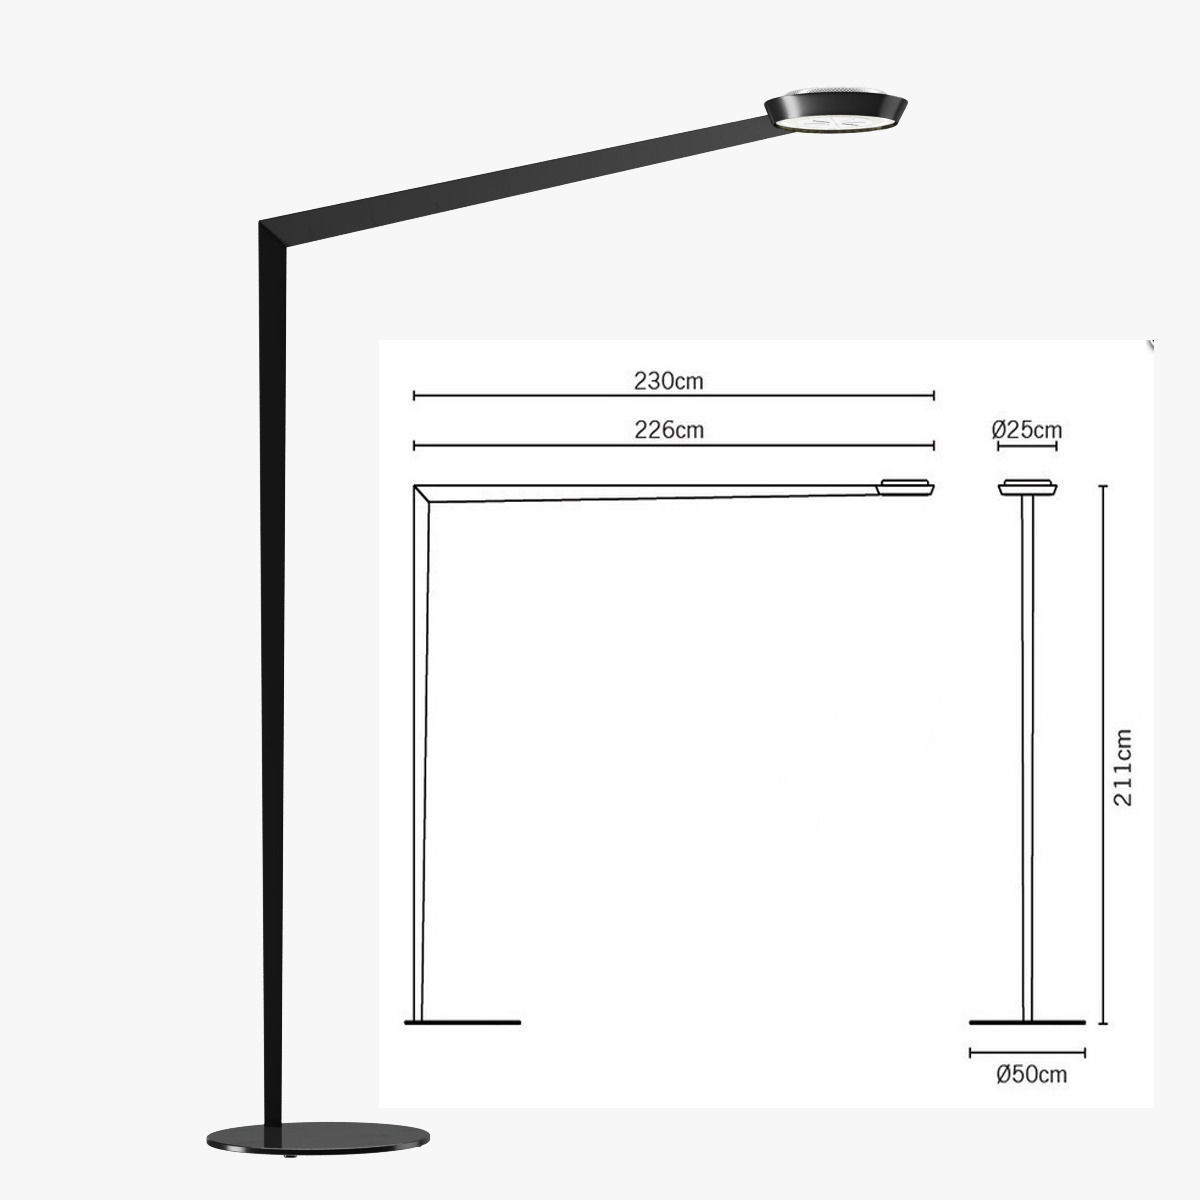 Floor lamp fabbian f05c0102 angle 3d cgtrader floor lamp fabbian f05c0102 angle 3d model max obj 3ds fbx mtl 1 mozeypictures Gallery